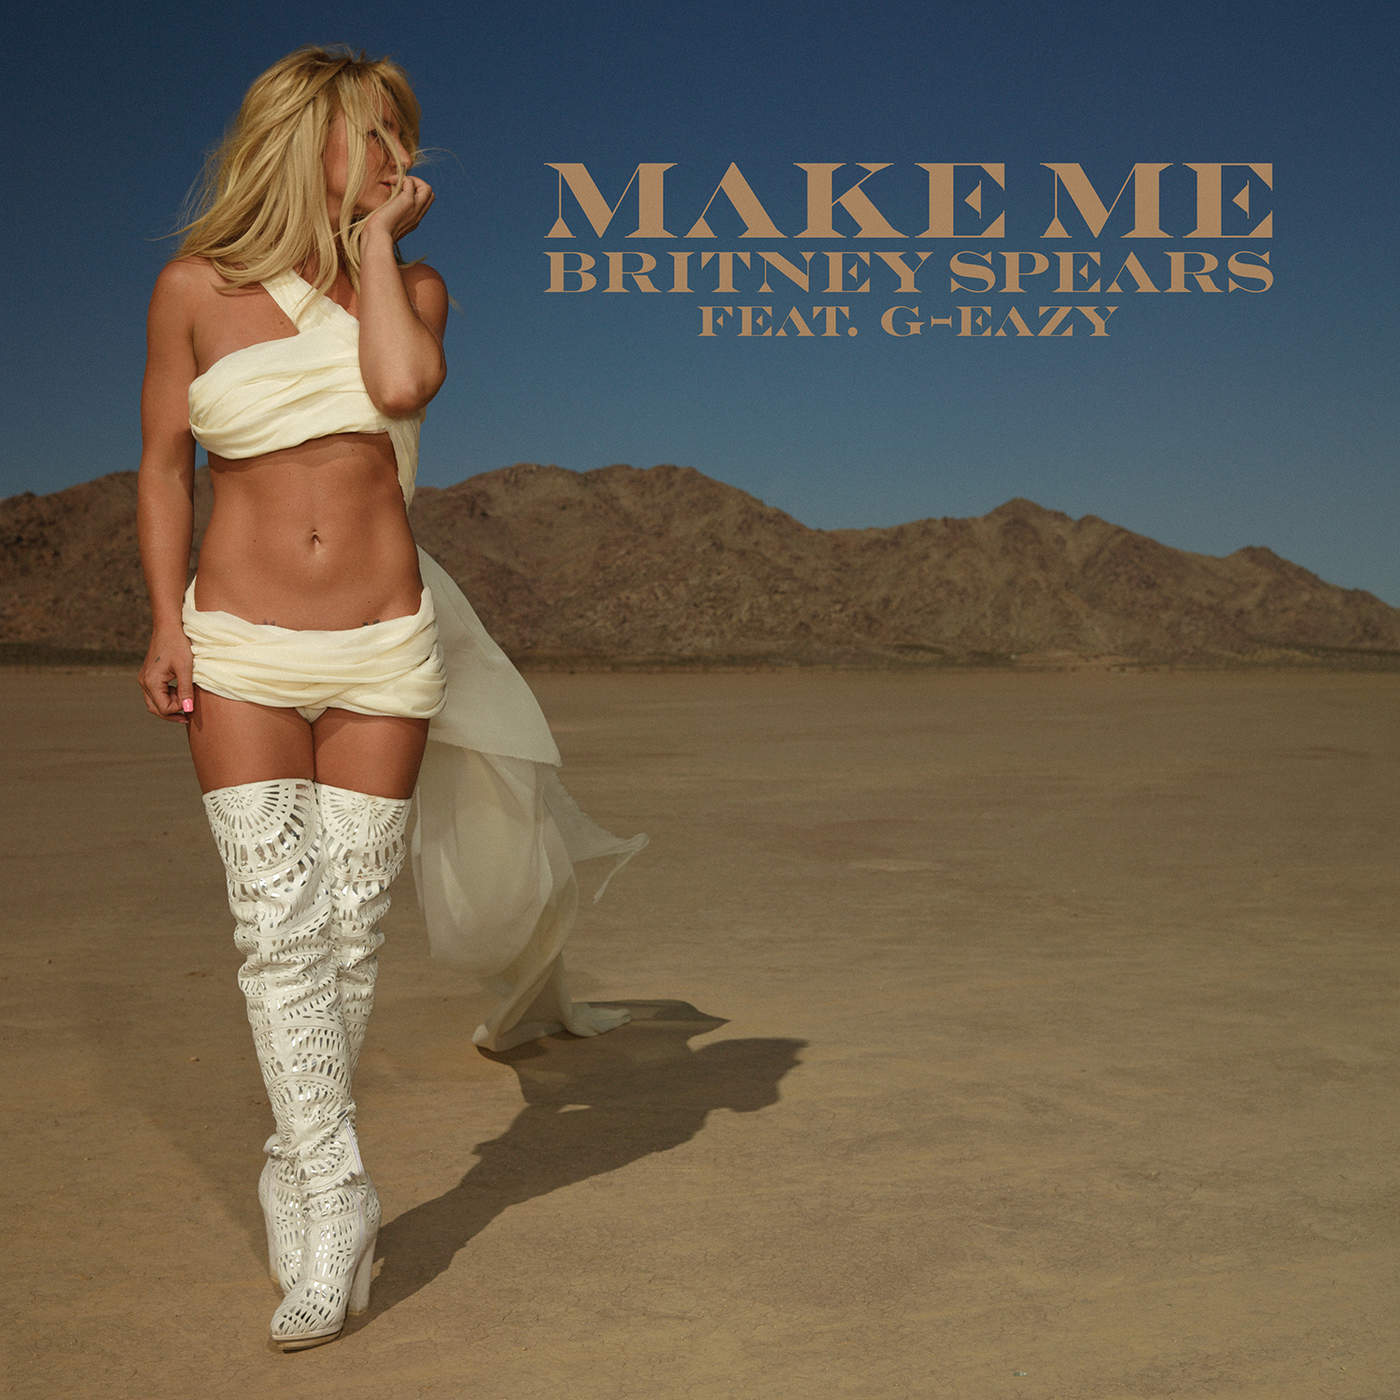 Britney Spears - Make Me... (feat. G-Eazy) - Single Cover